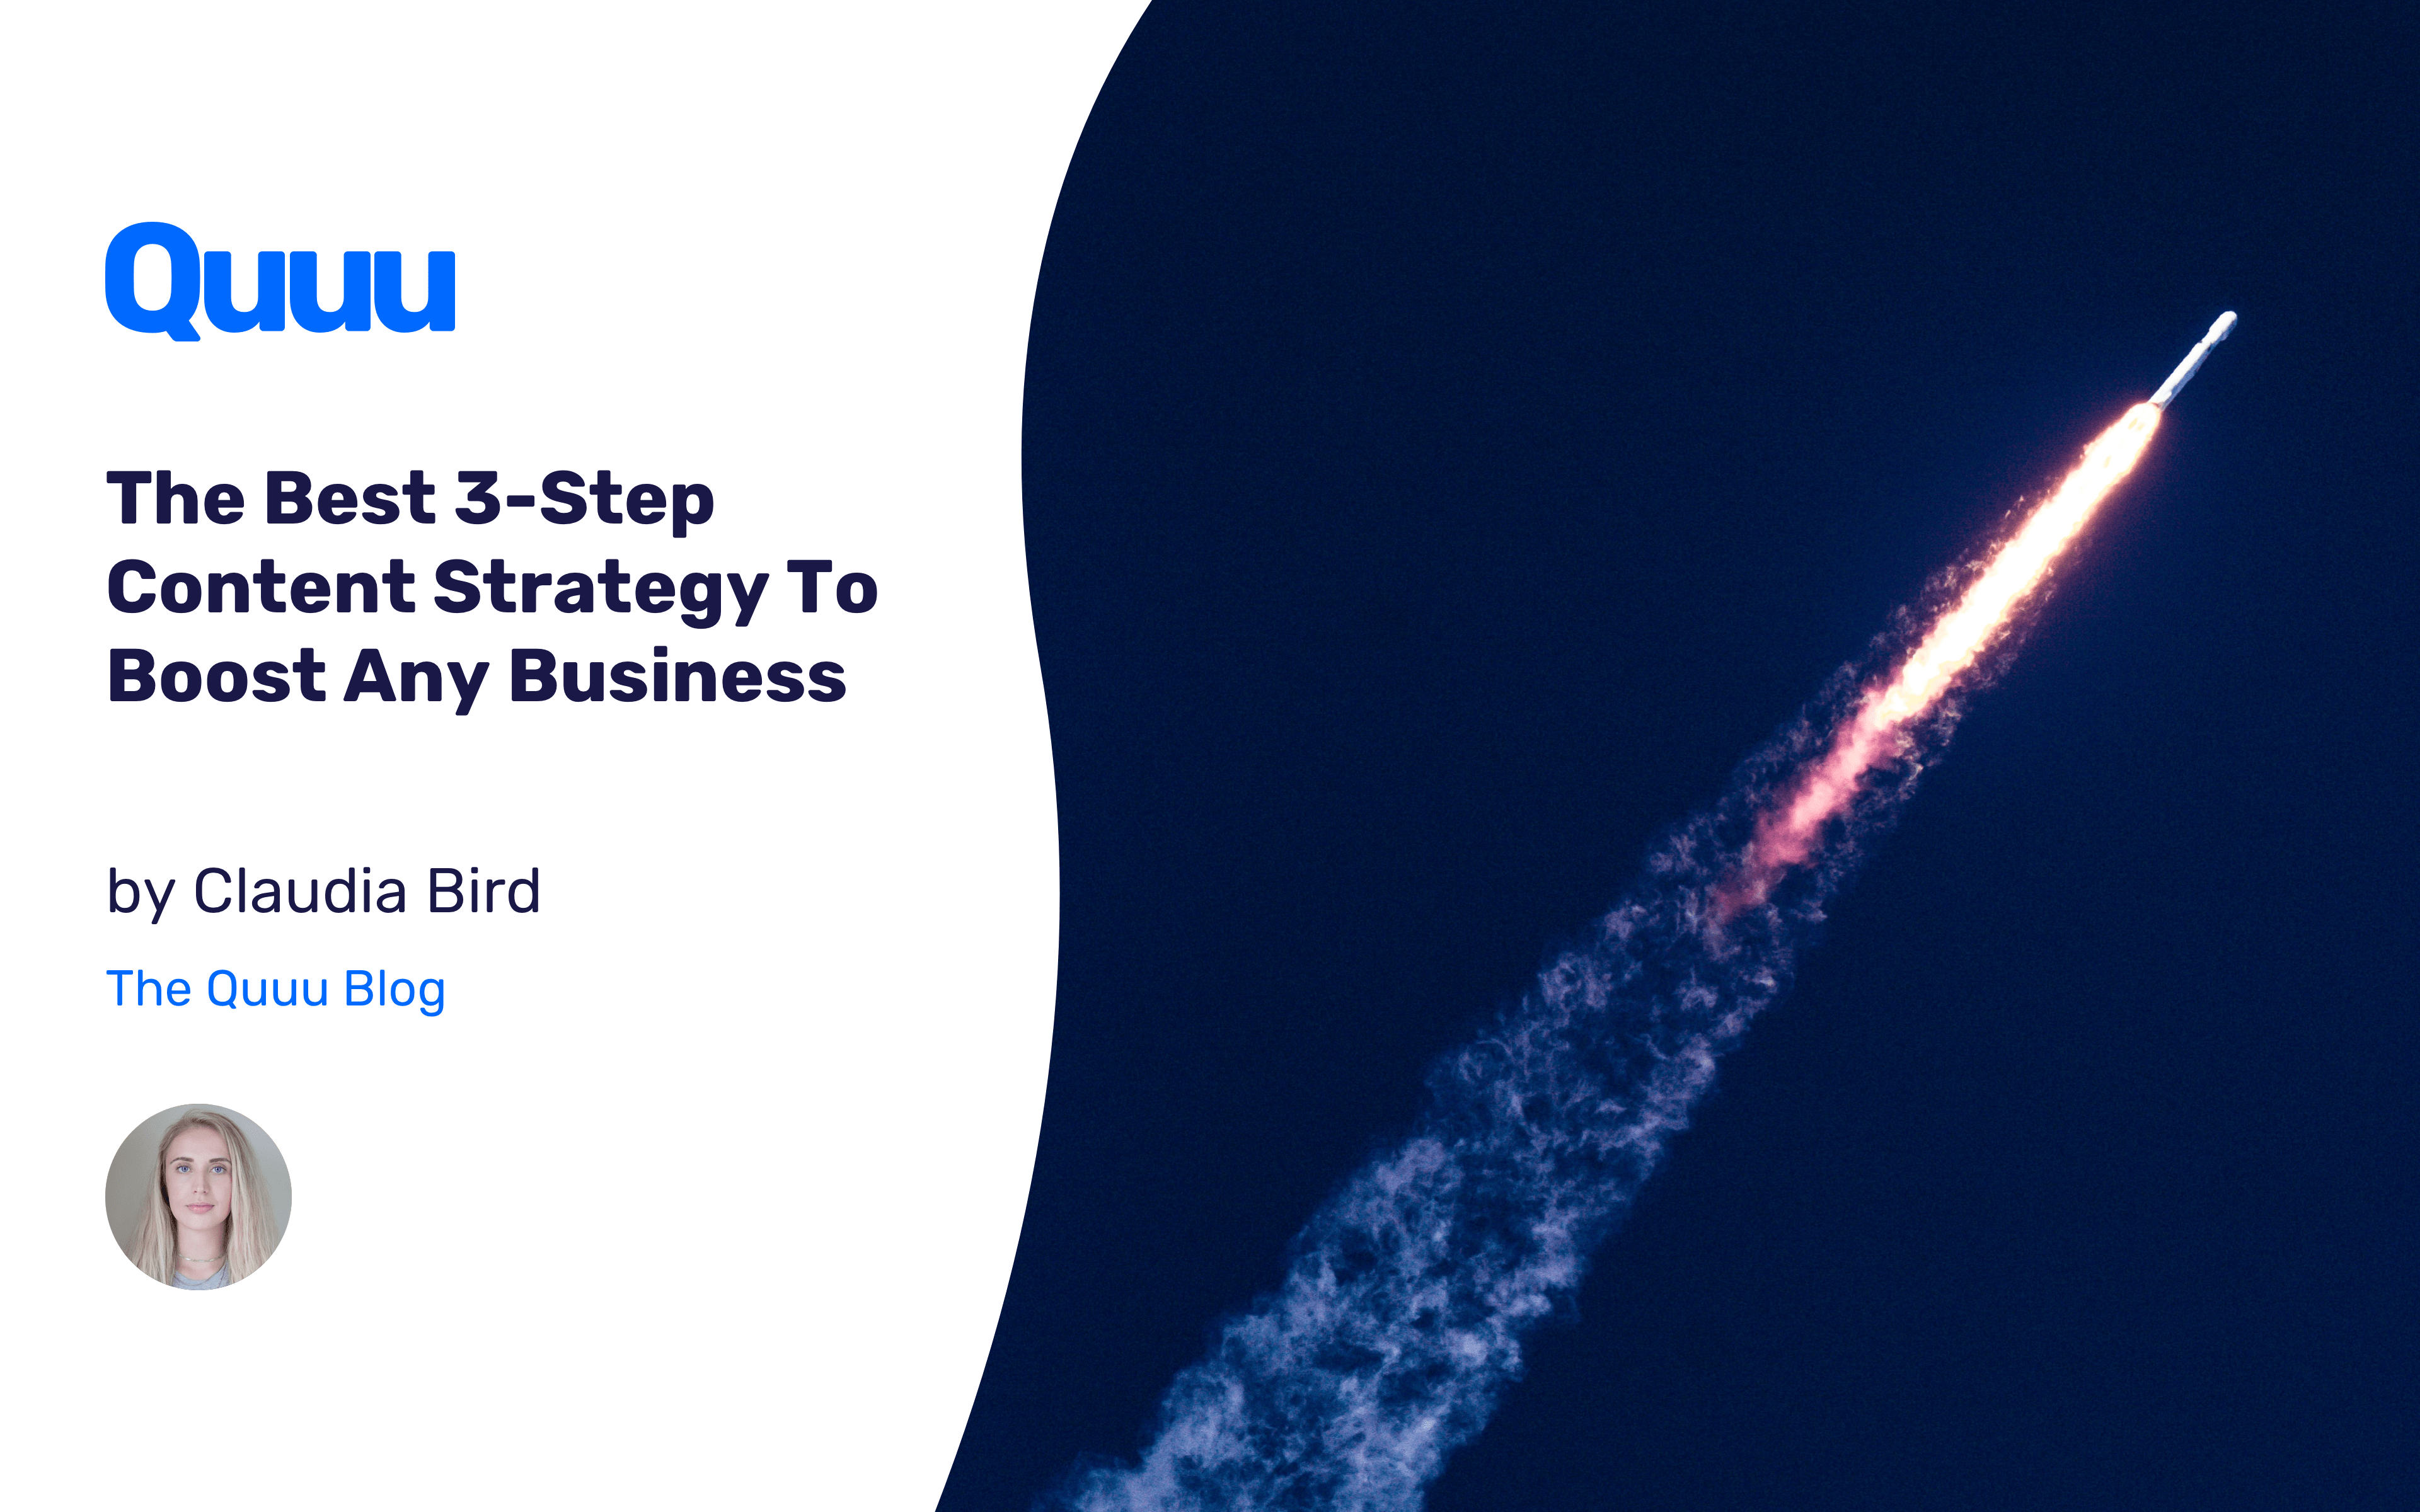 The Best 3-Step Content Strategy To Boost Any Business